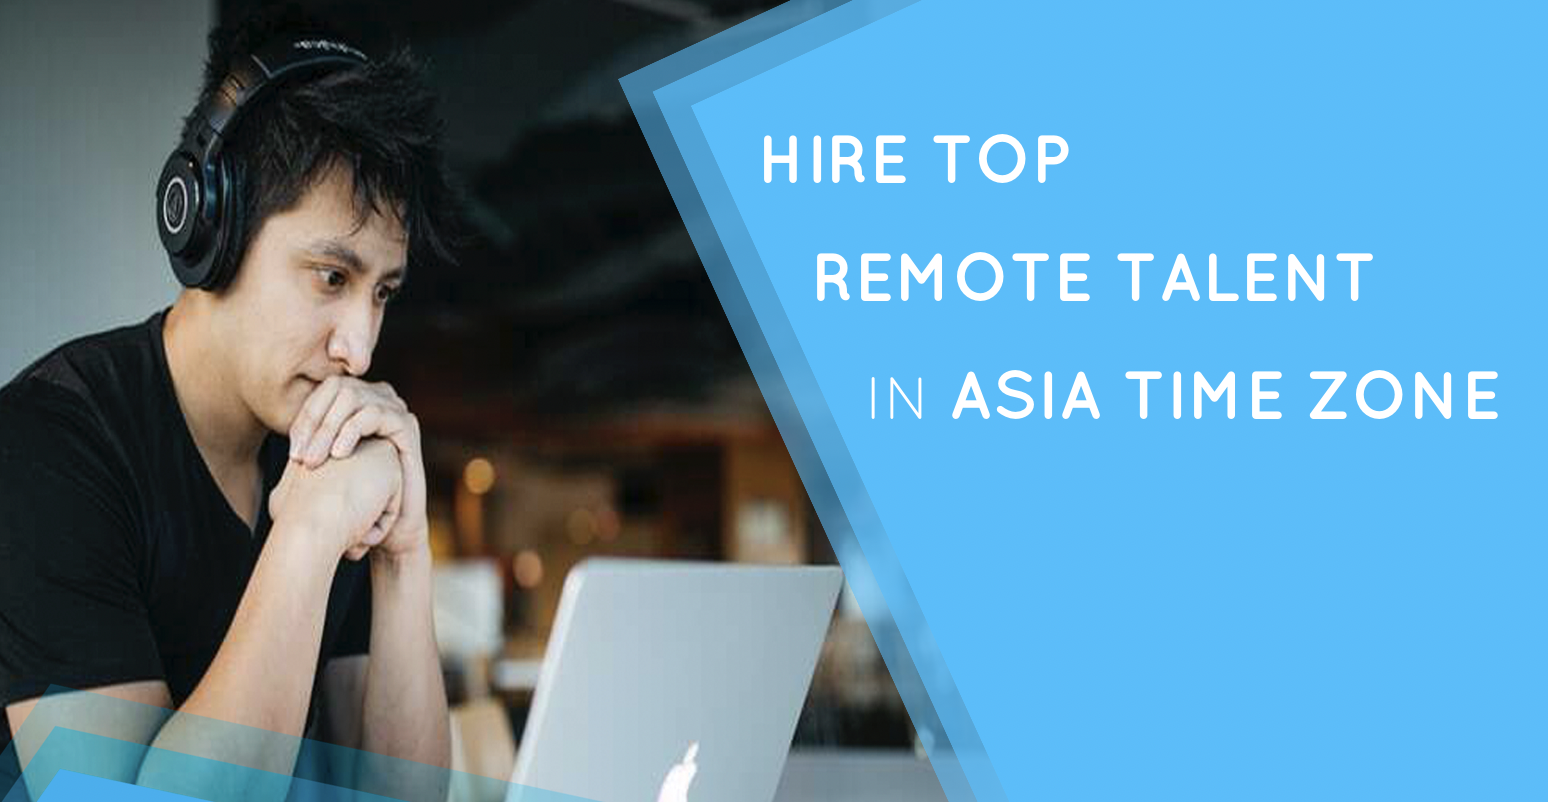 Hiring Top Remote Talent in Southeast Asia | Read more blogs at New Day Jobs